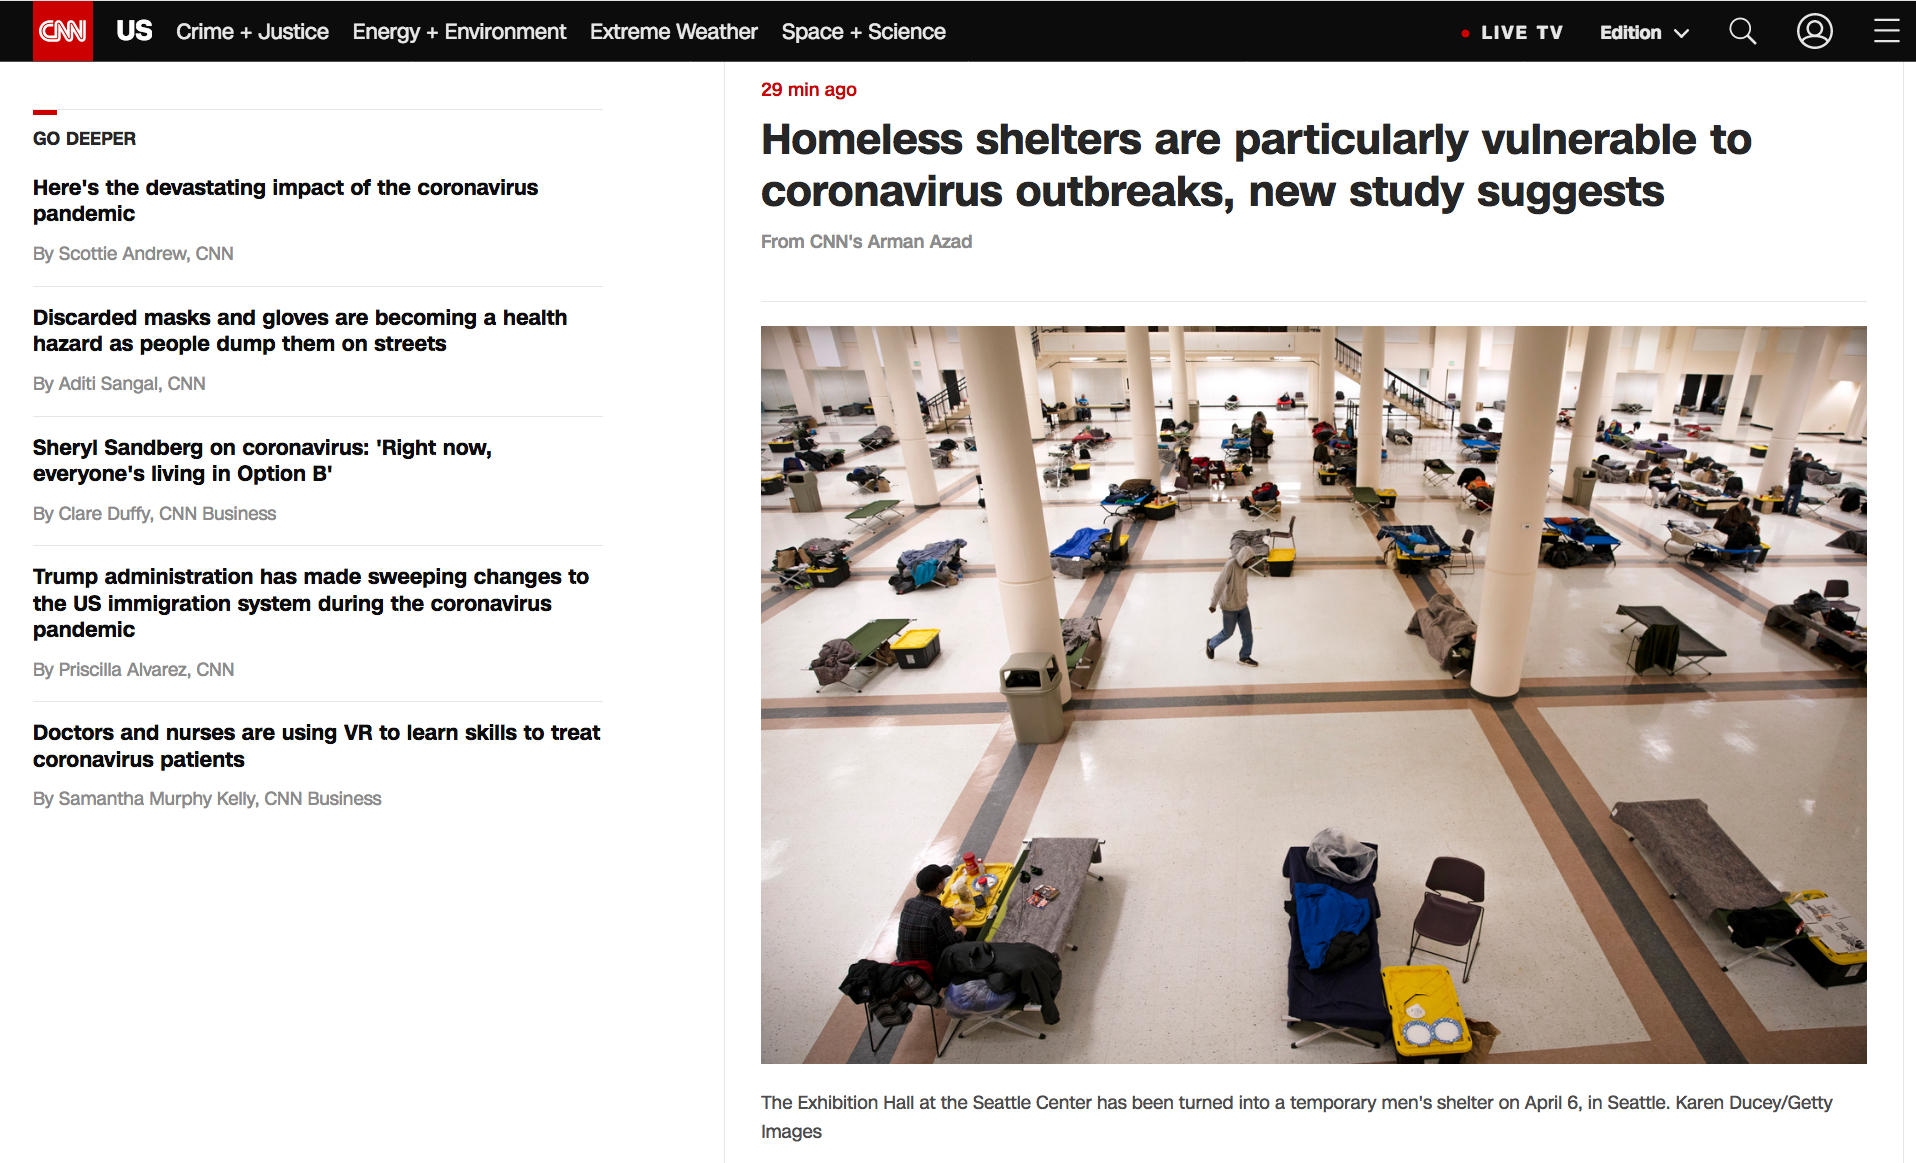 {quote}Homeless shelters are particularly vulnerable to coronavirus outbreaks, new study suggests{quote}, for Getty Images published on CNN on April 22, 2020.